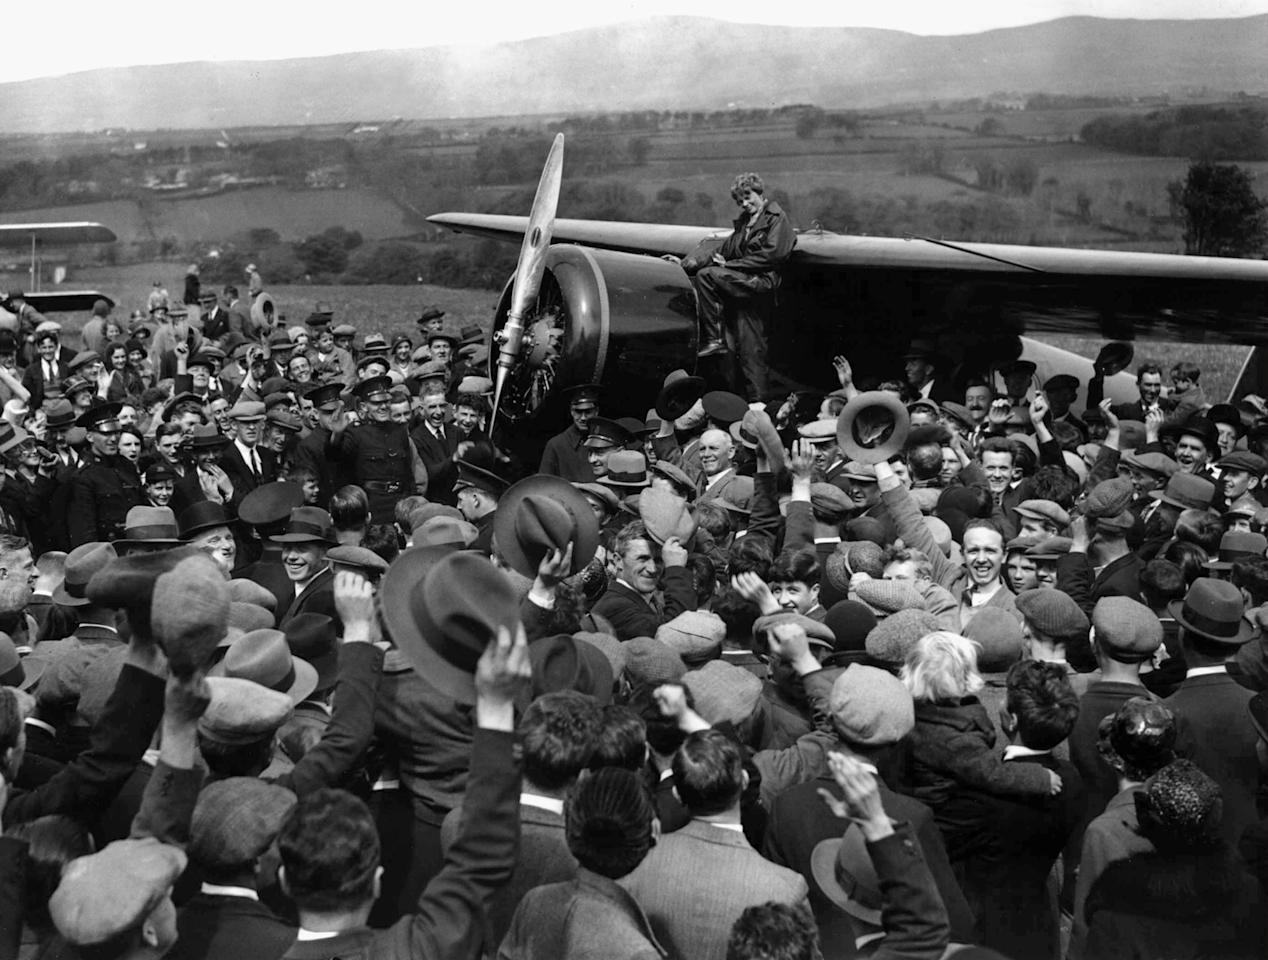 FILE - In this May 22, 1932 file photo, a crowd cheers Amelia Earhart as she boards her single-engine Lockheed Vega airplane in Londonderry, Northern Ireland, for the trip back to London. Three bone fragments found on a South Pacific island could help prove that Earhart died as a castaway after failing in her quest to circumnavigate the globe. Researchers told The Associated Press on Friday Dec. 17, 2010 that the University of Oklahoma hopes to extract DNA from bones found by a Delaware group dedicated to the recovery of historic aircraft. The fragments were recovered earlier this year on an uninhabited island about 1,800 miles south of Hawaii.